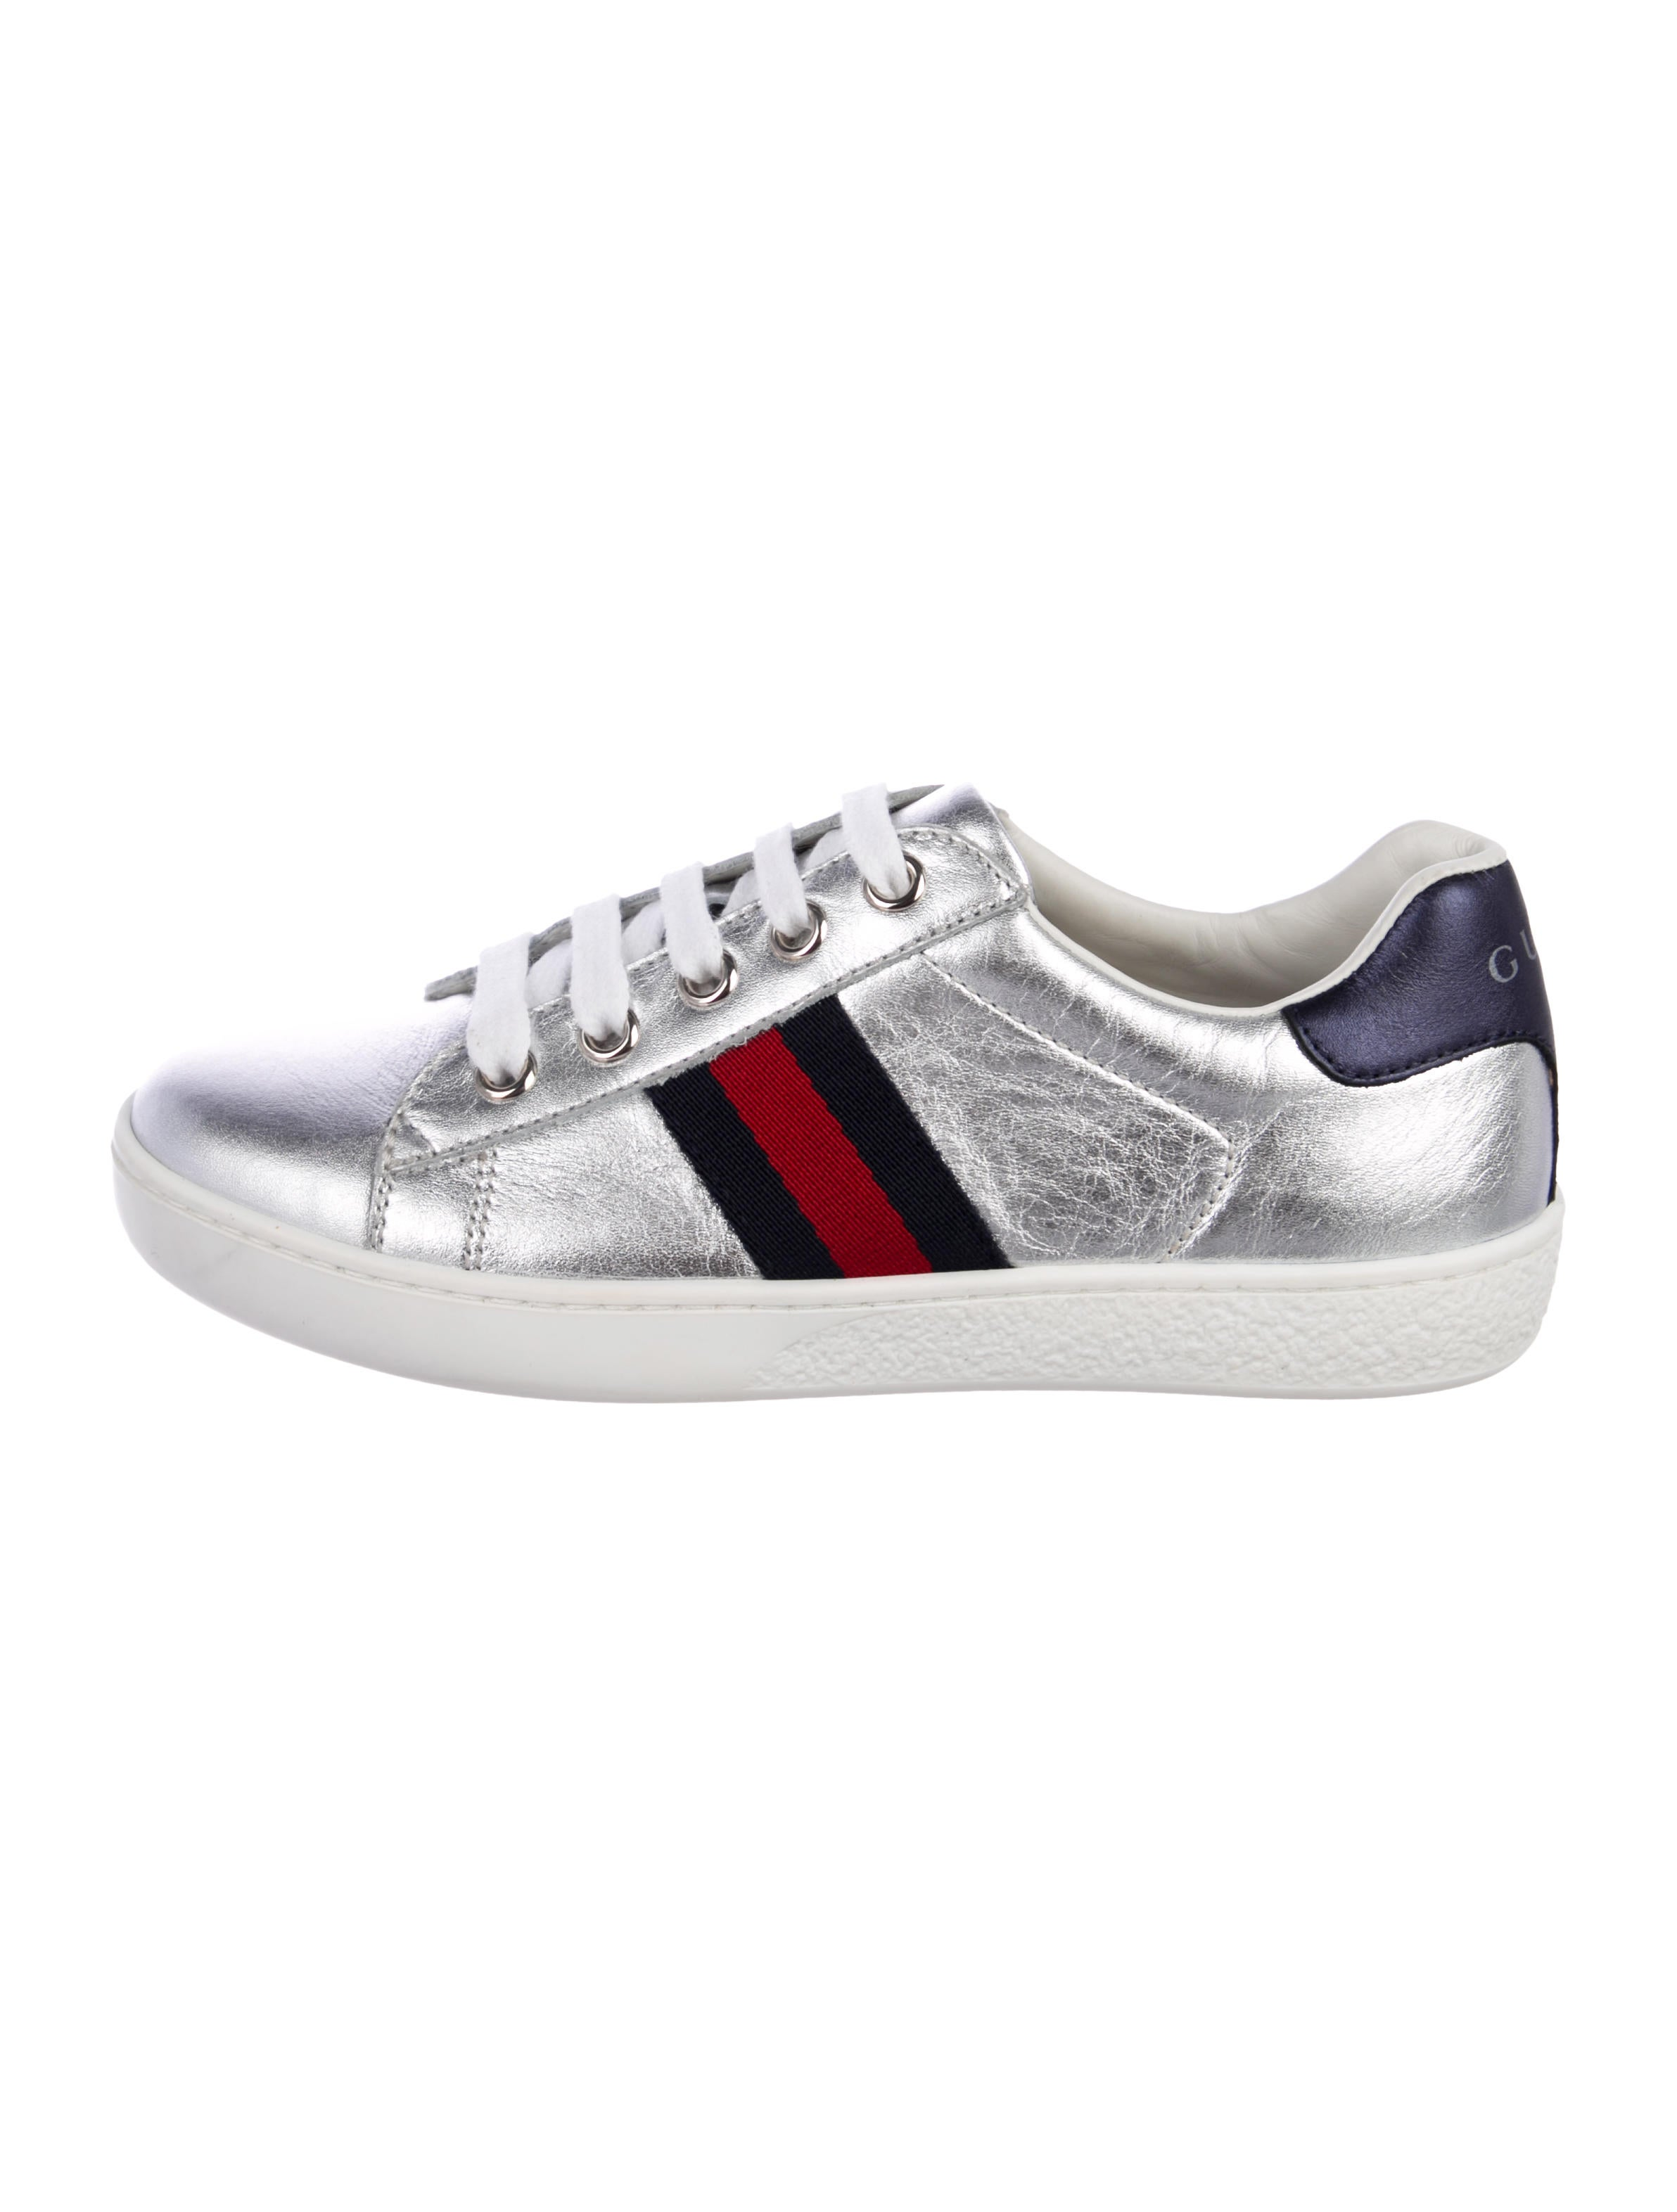 c716ff4ac9f Gucci Boys  Leather Low-Top Sneakers - Boys - GUC241466